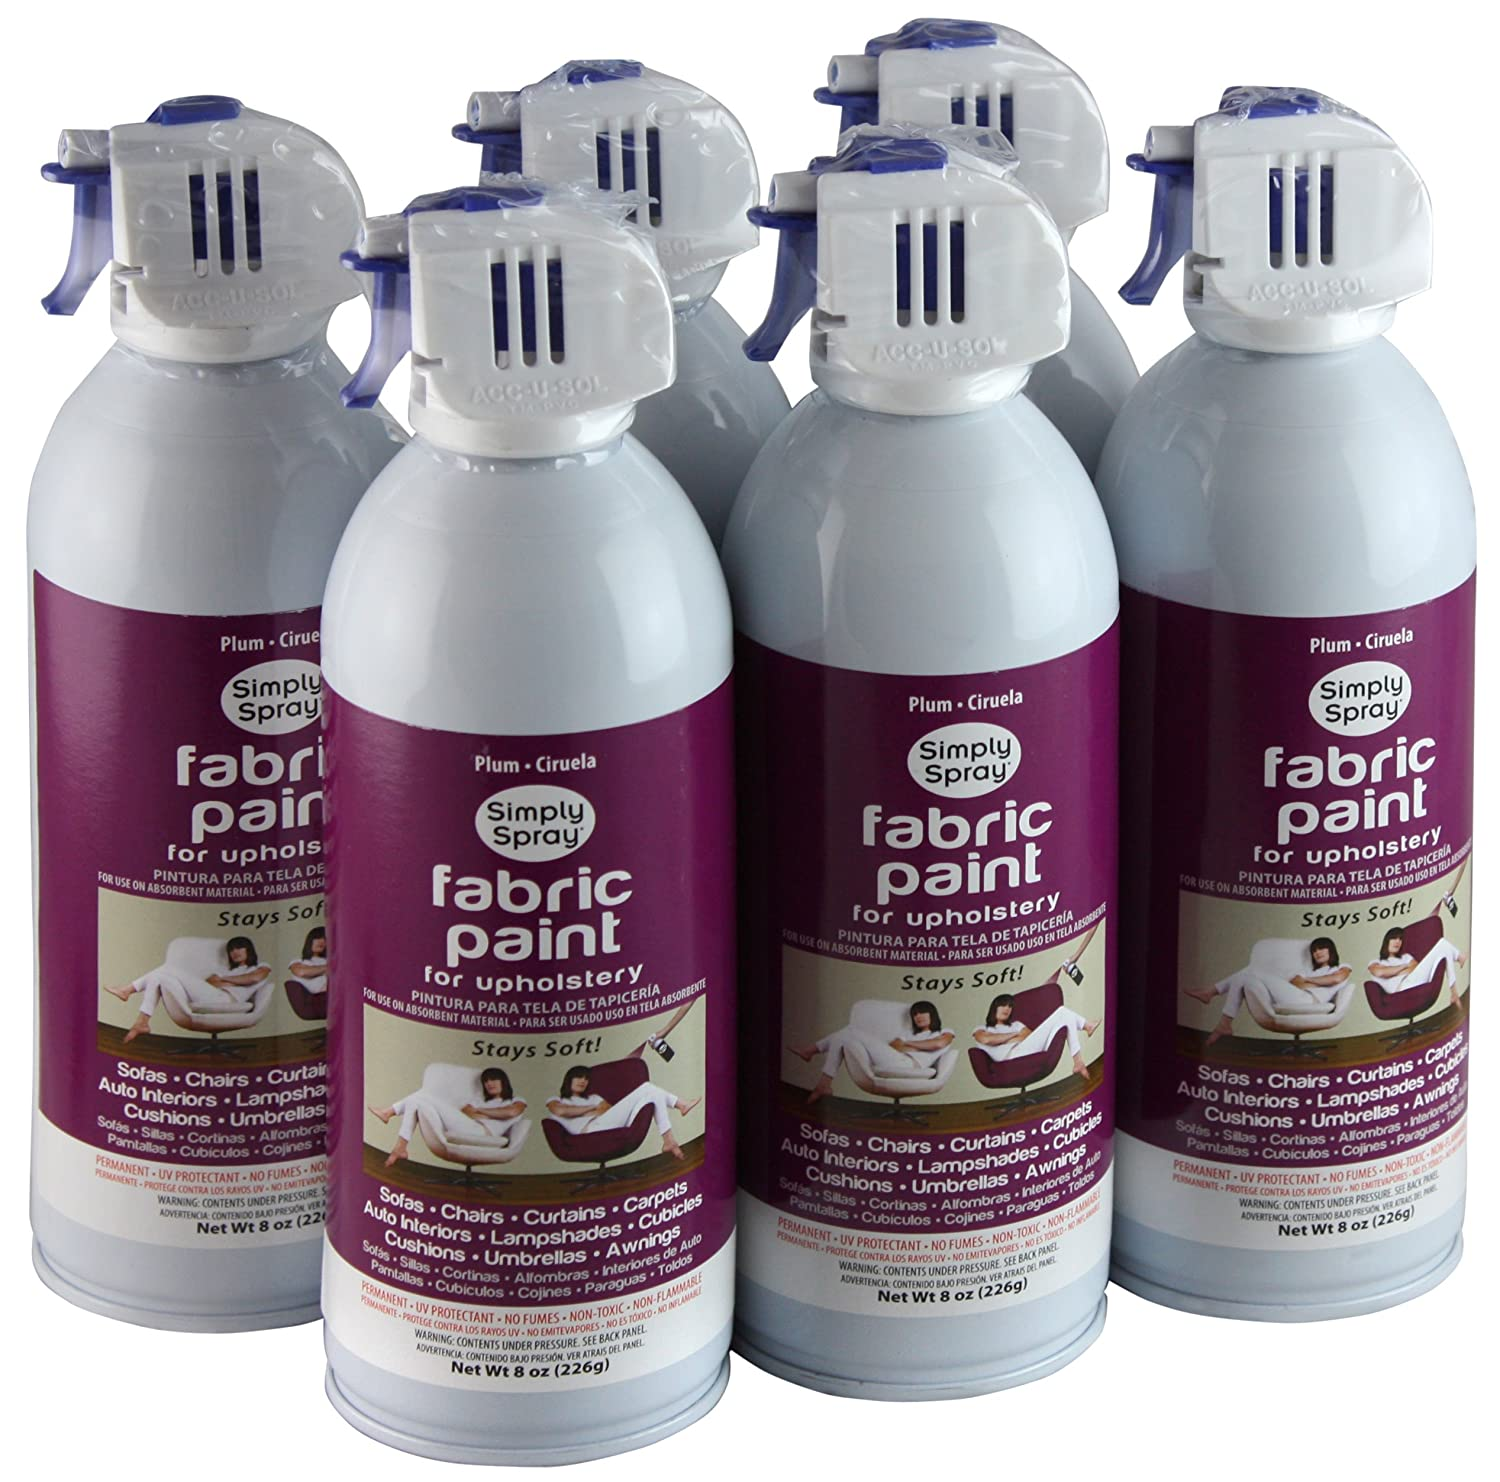 furniture fabric paintSimply Spray Upholstery Fabric Spray Paint 8 Oz Can 6 Pack Plum